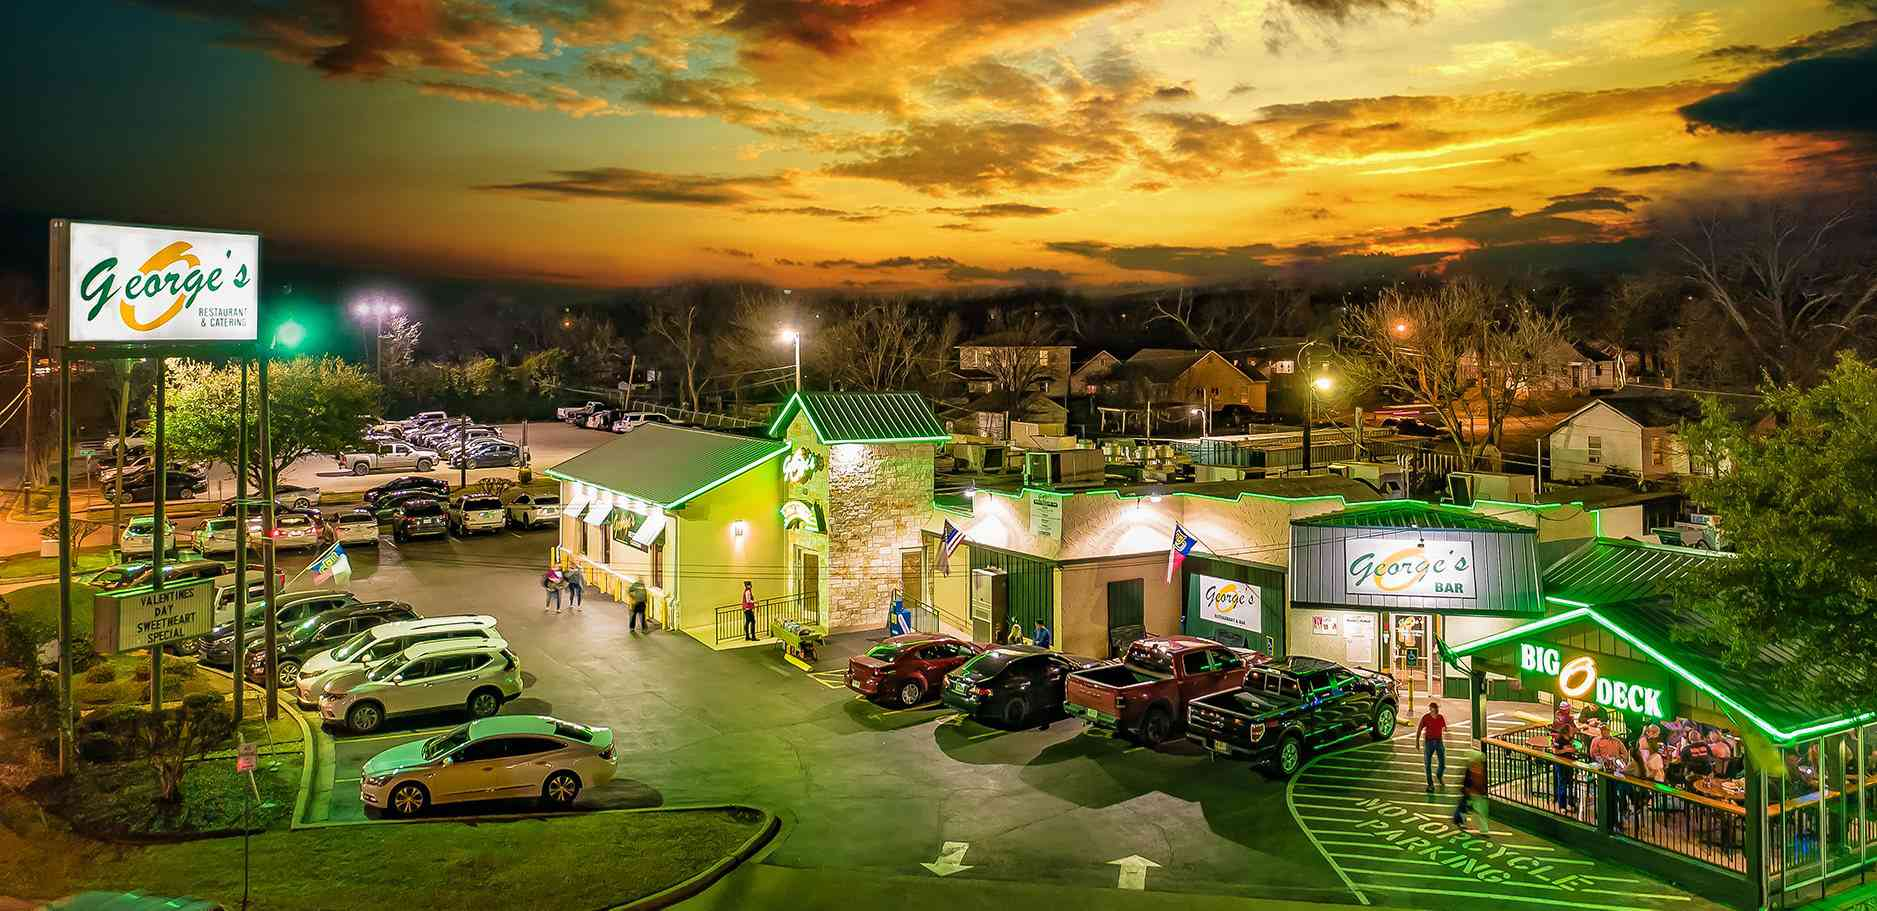 View of the Original George's Restaurant at sunset in Waco